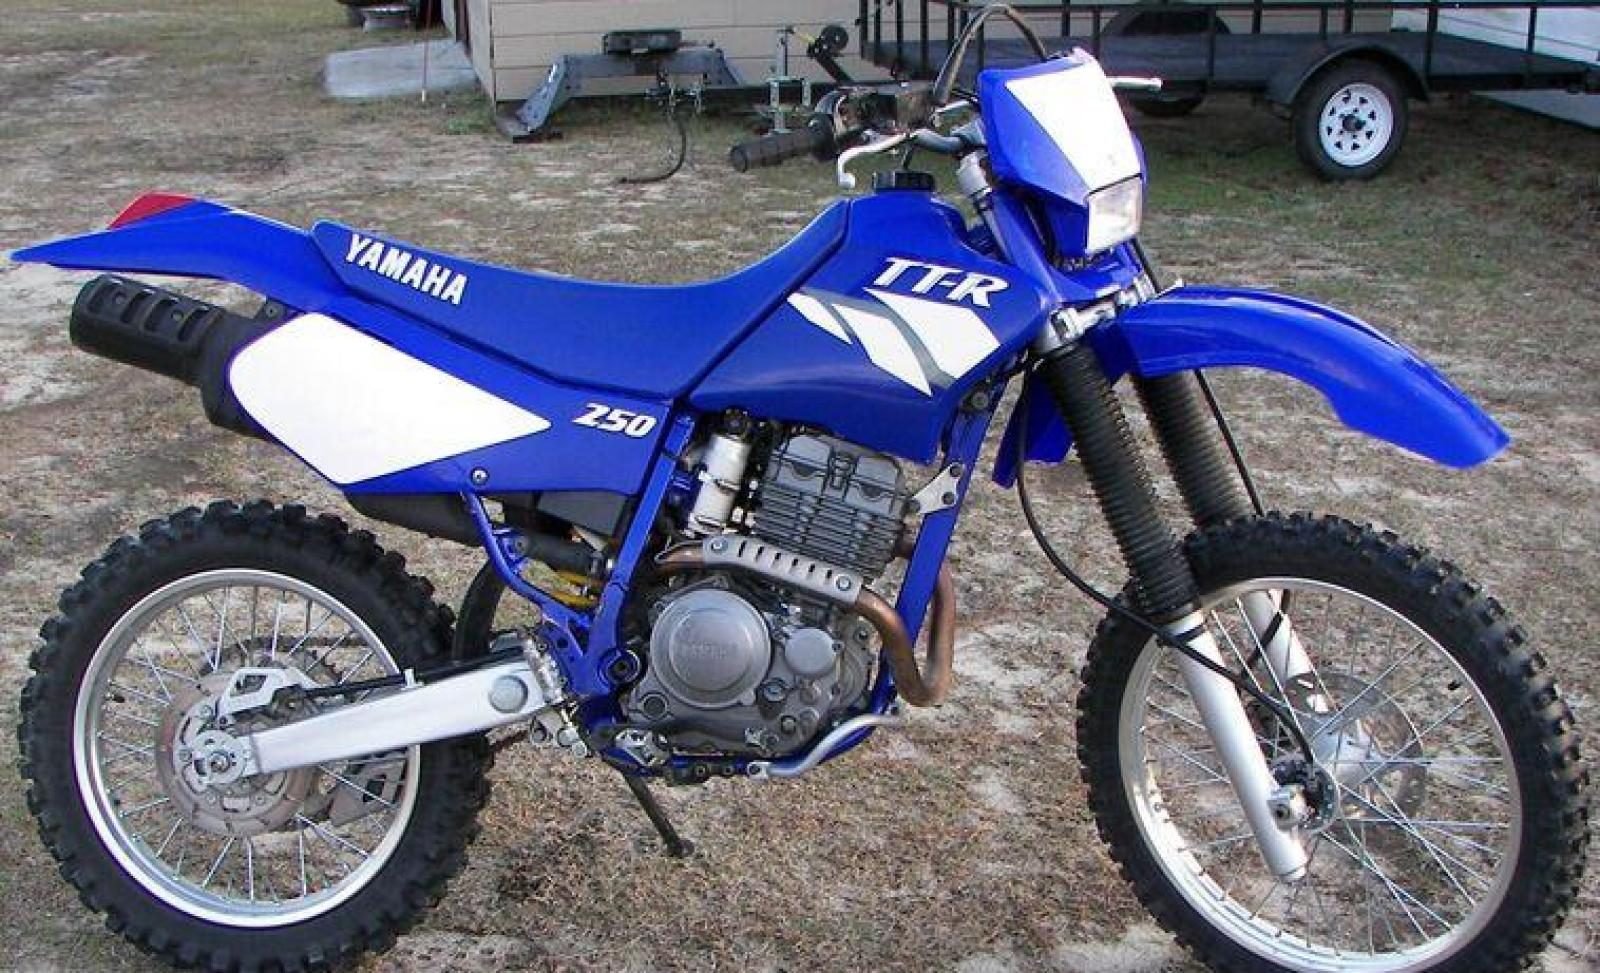 2001 yamaha ttr125 wiring diagram 2001 yamaha wr250f 1986 chevy diesel alternator wiring diagram ttr125 wiring diagram